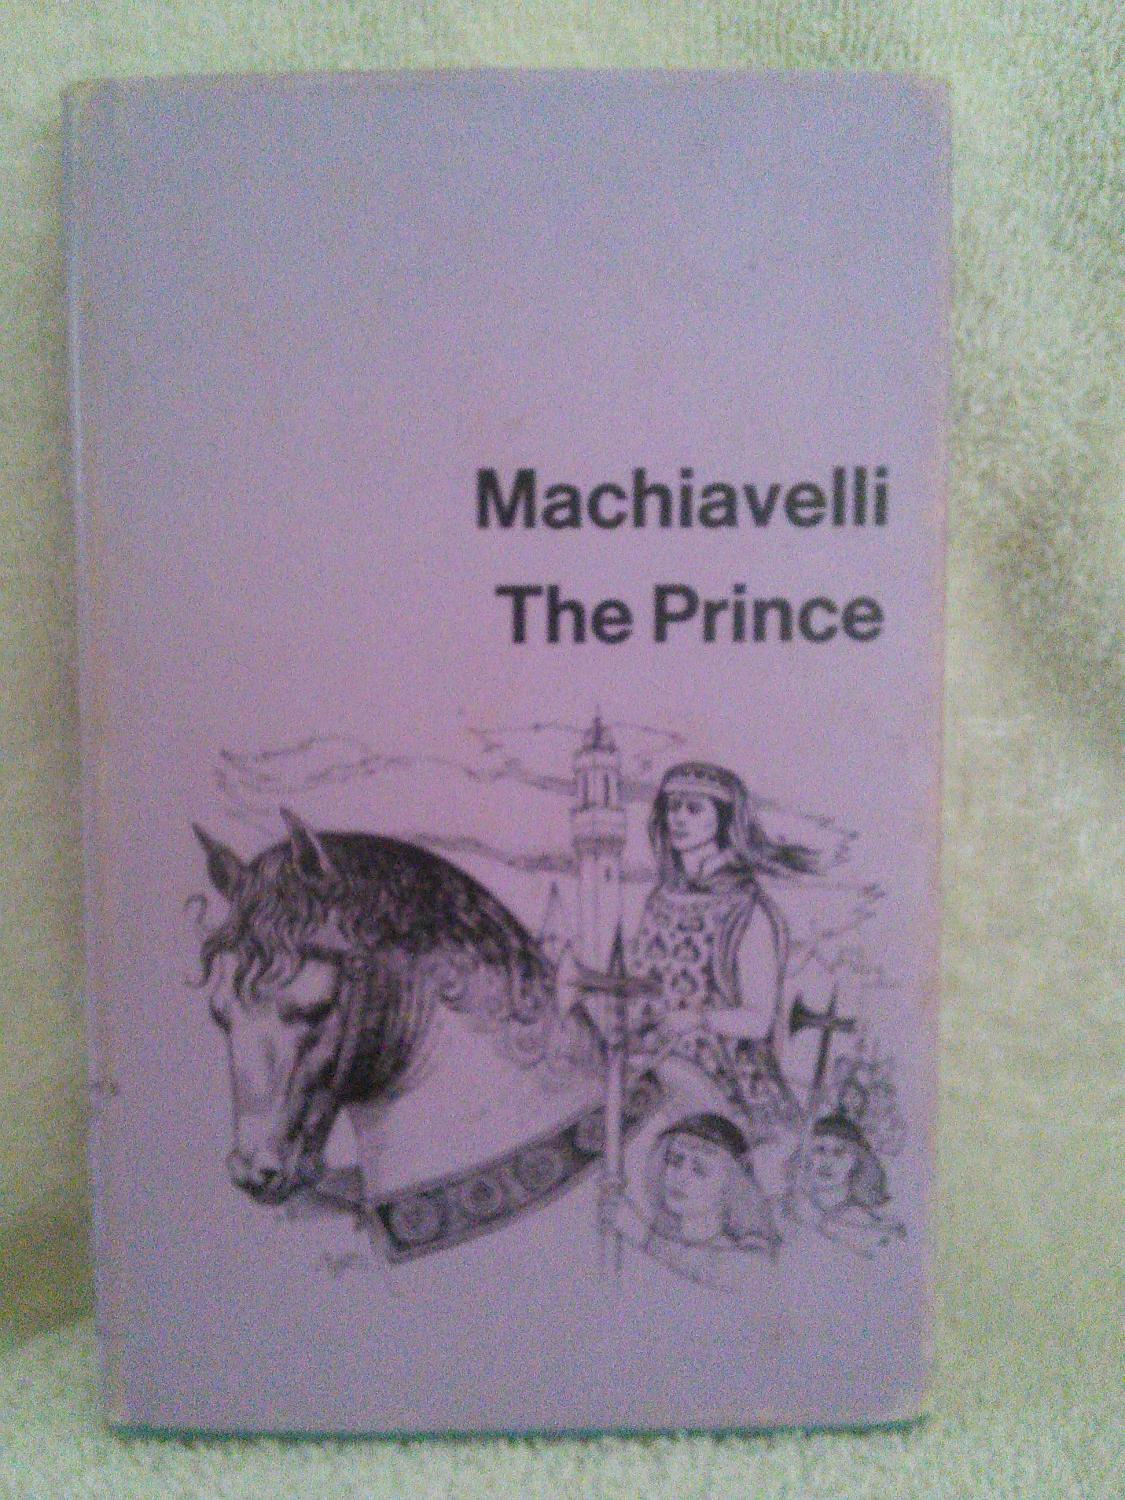 machiavelli plato rebuplic prince comparison A light comparison between machiavelli's 'the prince' and plato's 'republic' the writer examines each of the author's respective eras, backgrounds, and influences before making determinations about the political similarities and differences between their two infamous works.